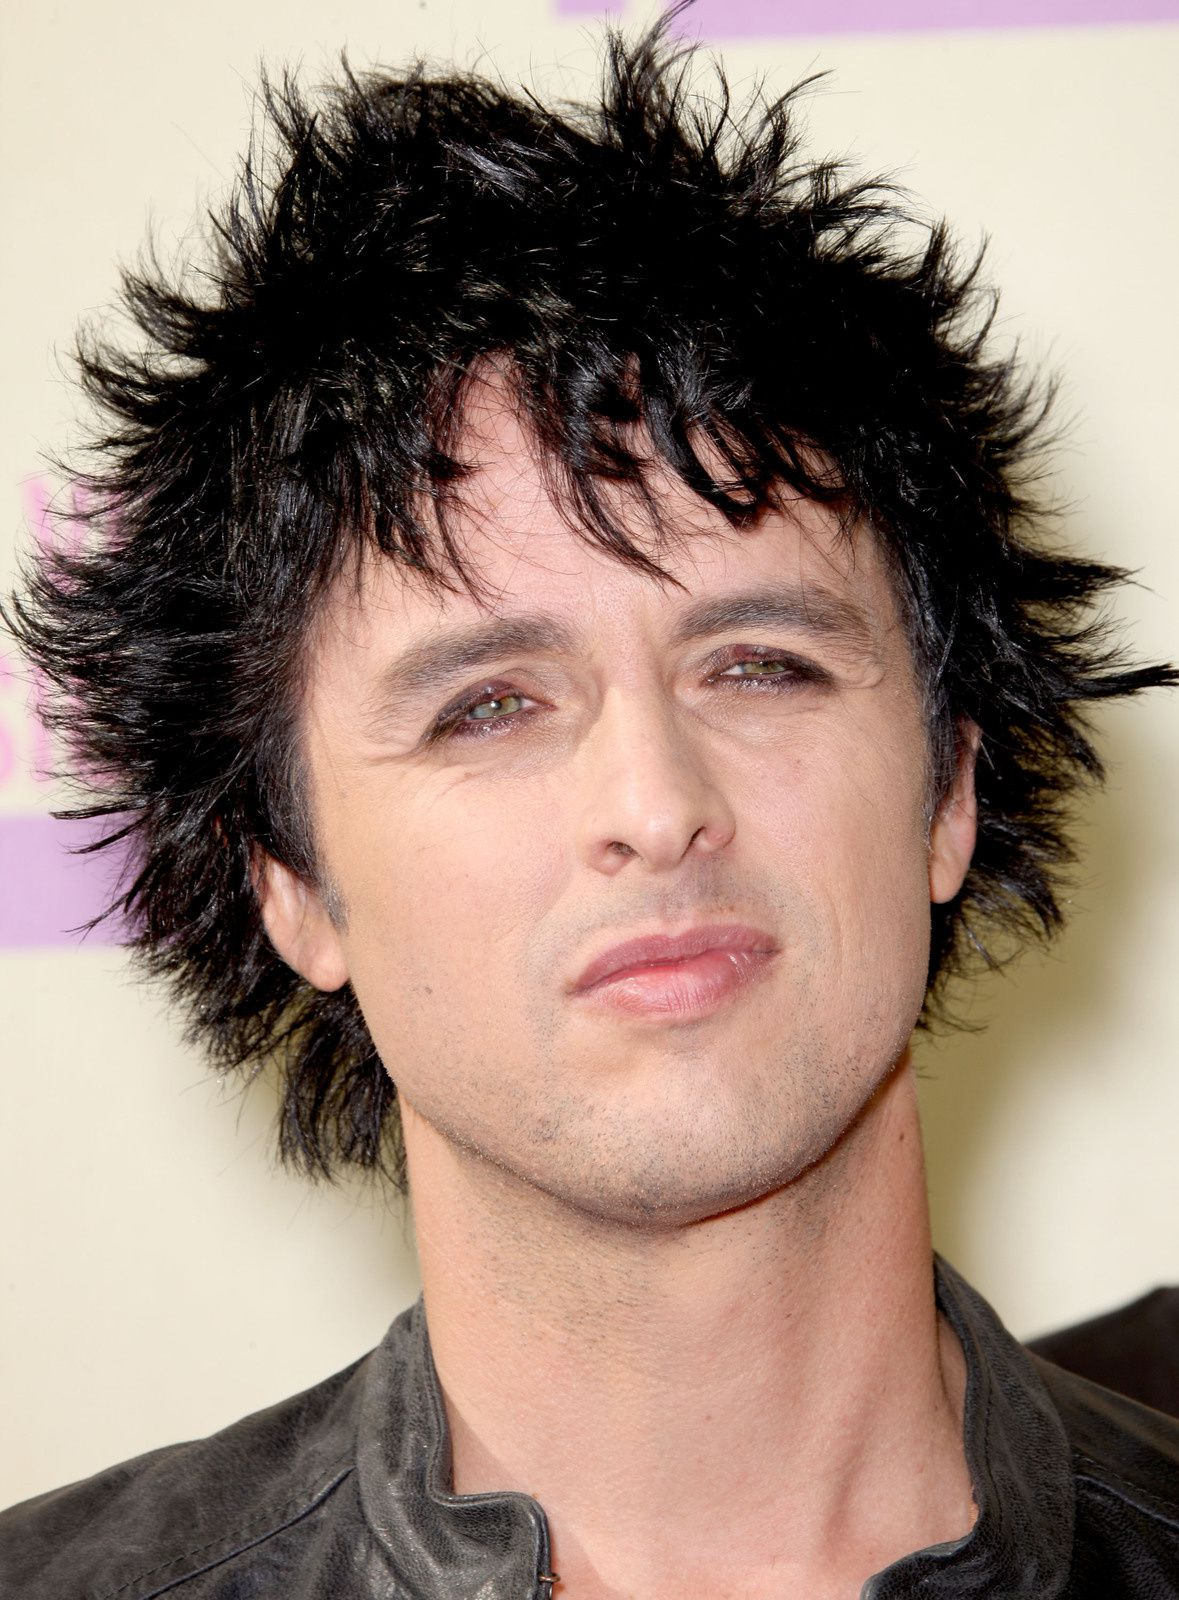 Billie Joe Armstrong, vocalist, main songwriter, and guitarist of Green Day